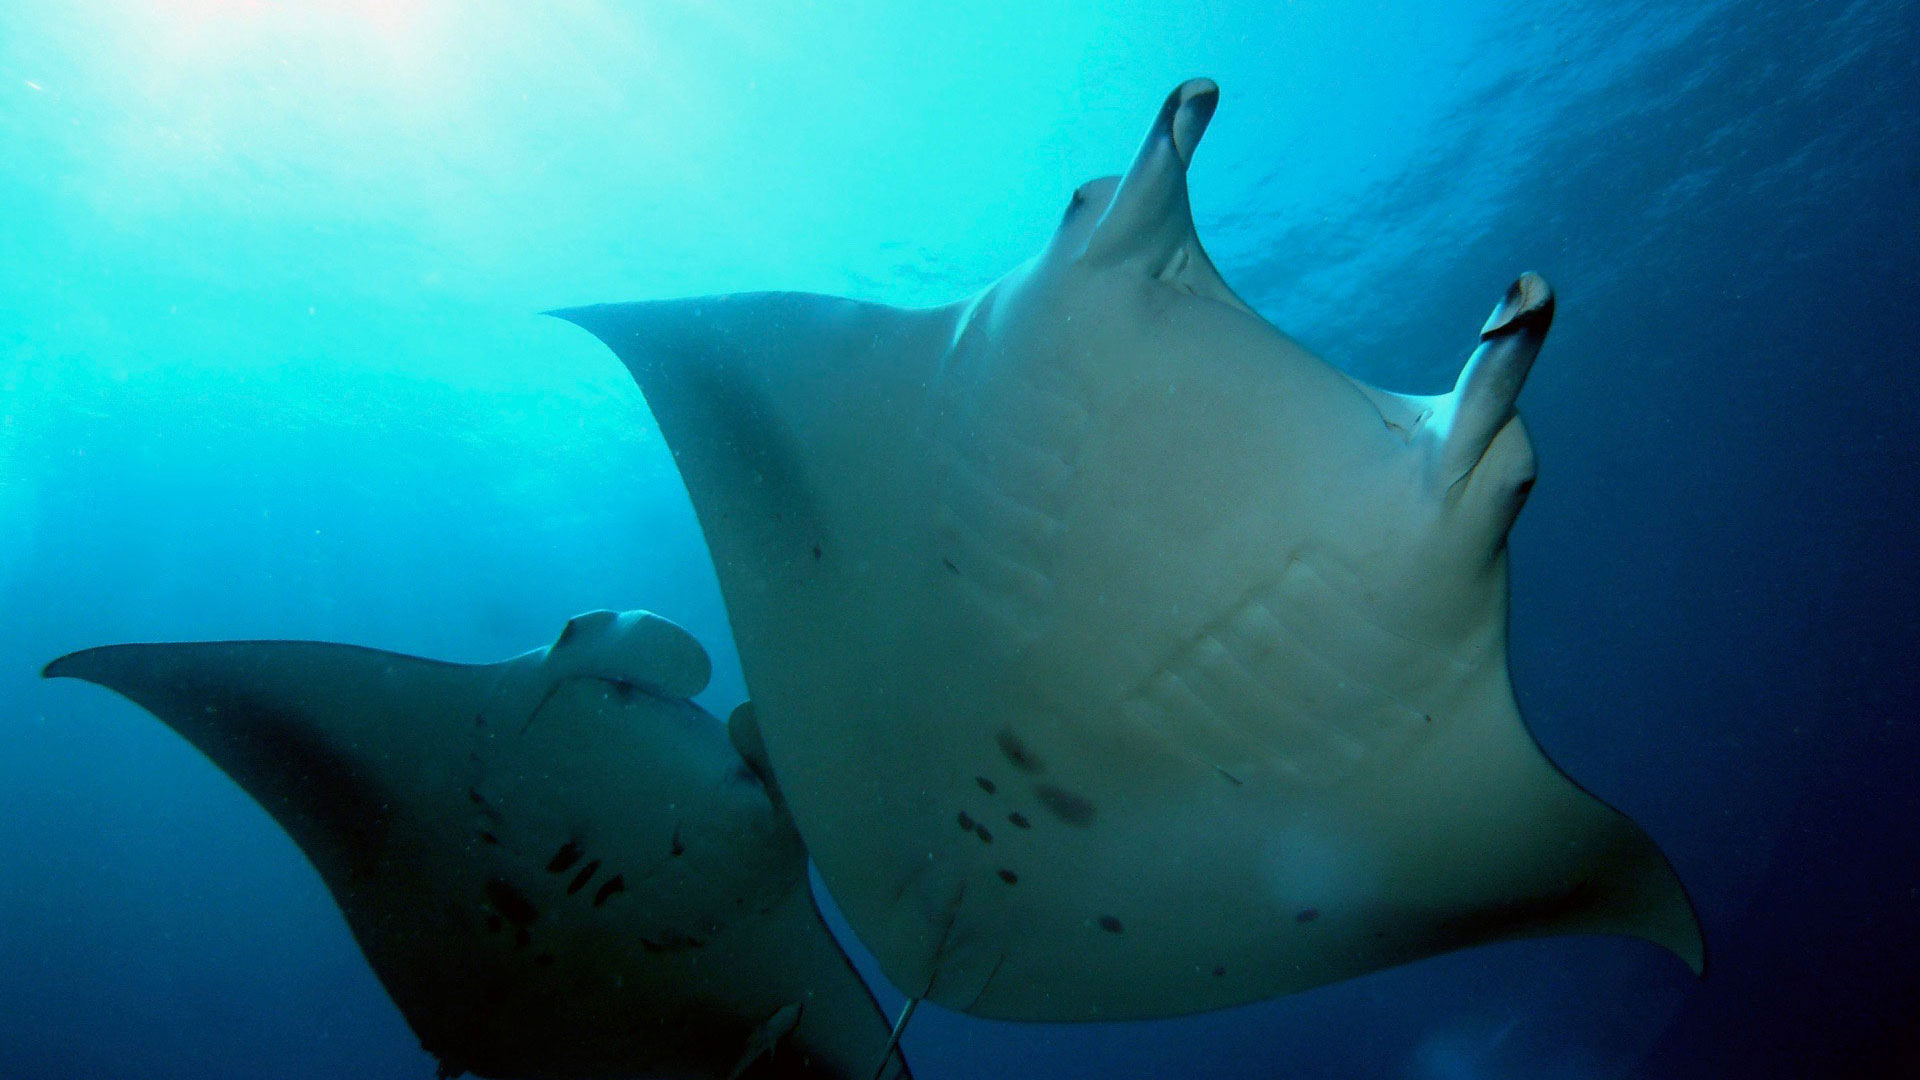 Manta Rays cleaning Divemood Liveaboards Maldives